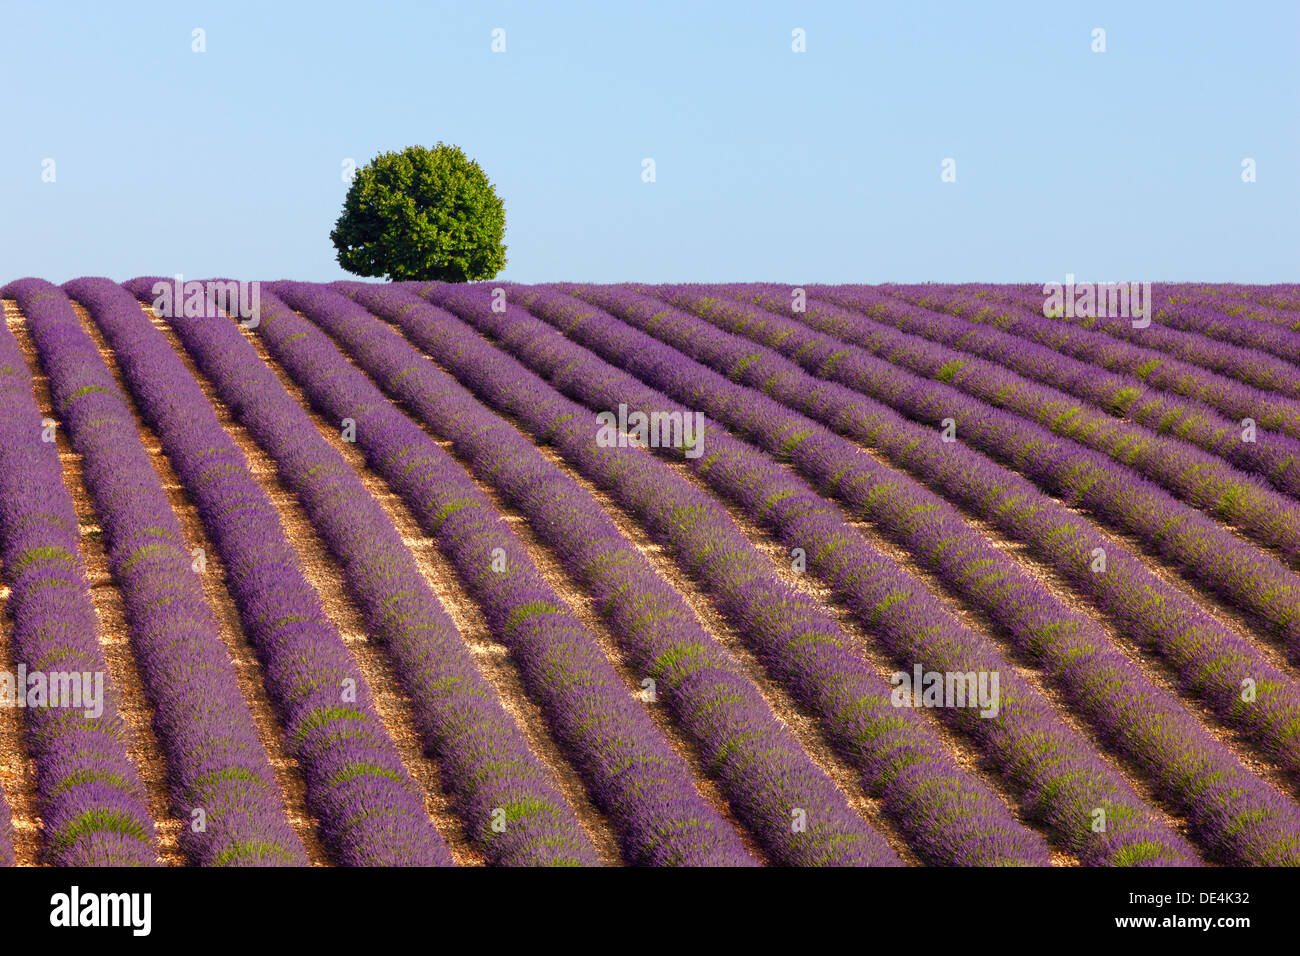 Tree on the top of the hill in lavender field. Provence, France. - Stock Image